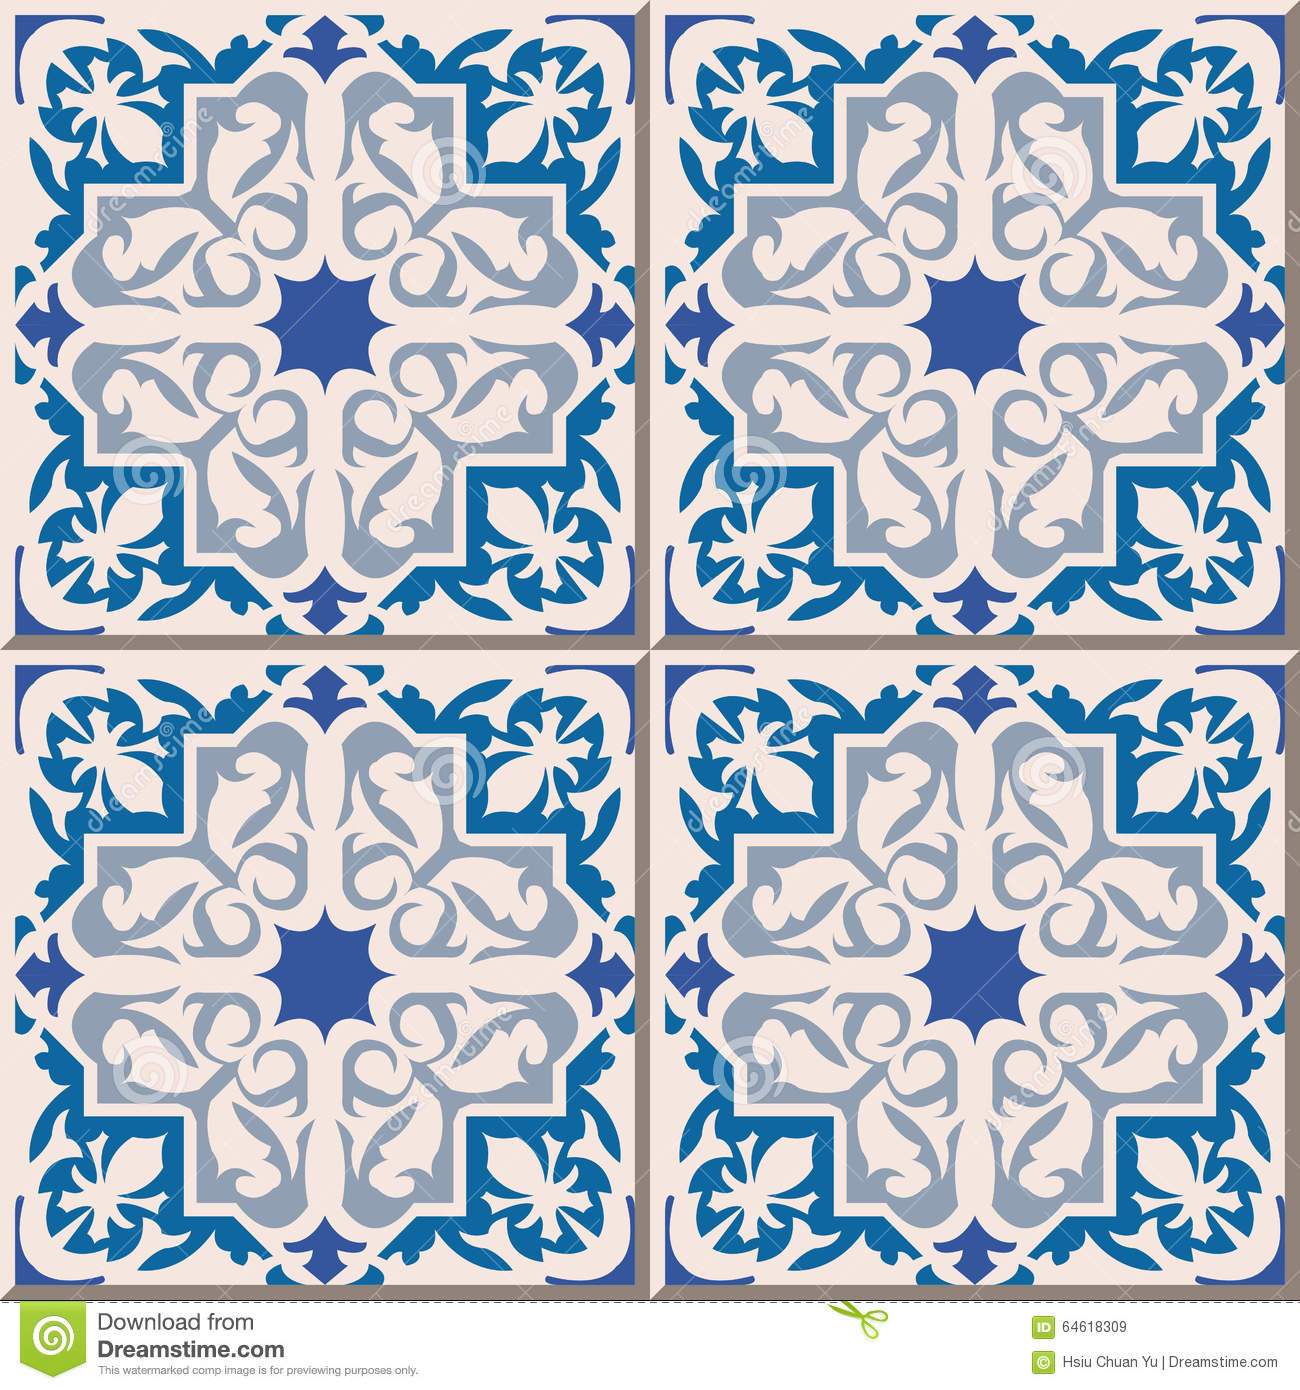 Vintage Seamless Wall Tiles Of Blue Star Geometry. Moroccan ...